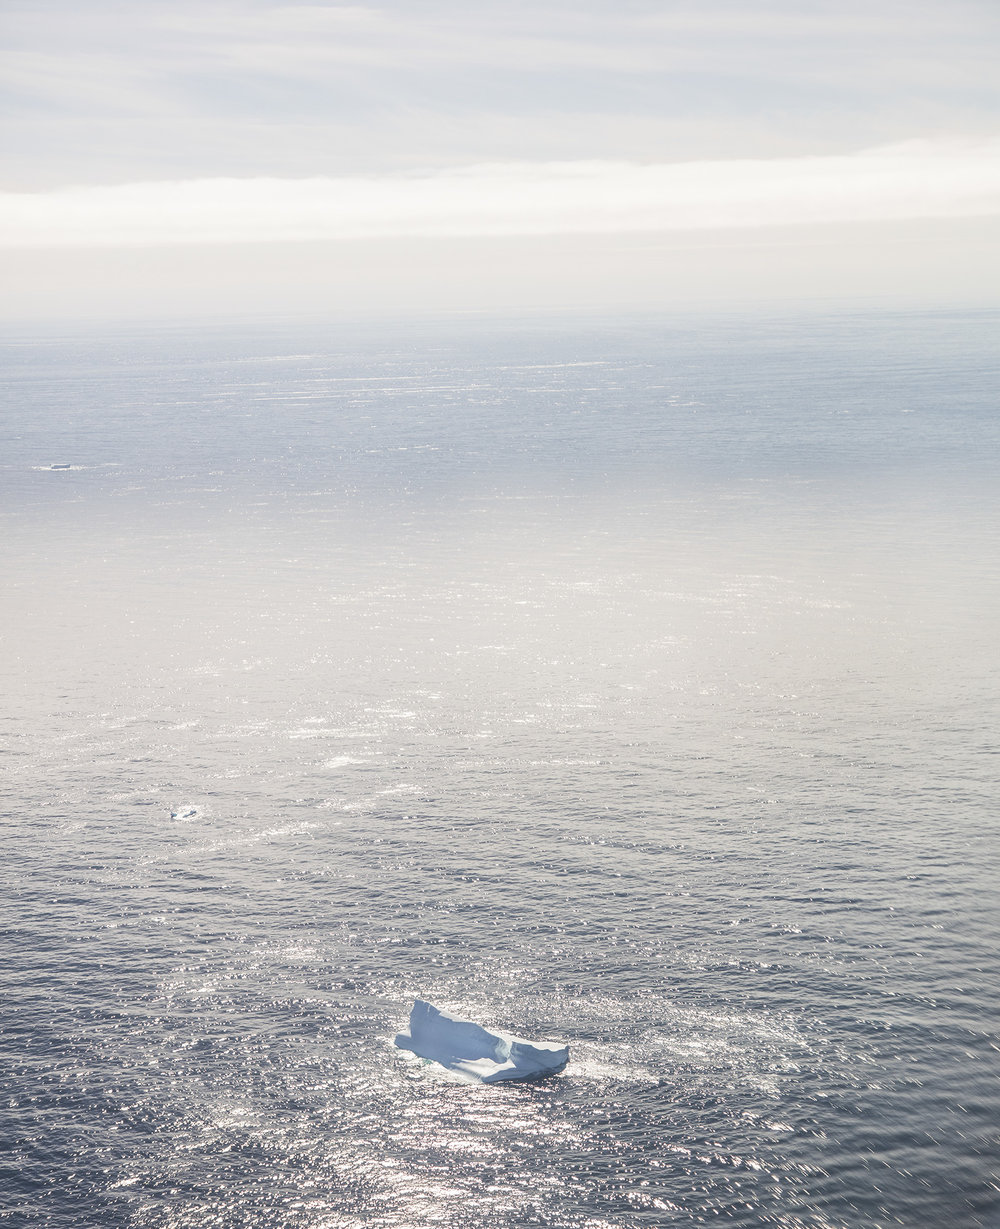 International Ice Patrol - This story chronicles a 9-hour operation over the North Atlantic and Arctic as they survey the great circle shipping lanes. Their mission is primarily to spot, identify, catalog, and alert traveling sea craft of potentially threatening ice floats. Commissioned by Monocle MagazineWriter: Tomos LewisLink to story